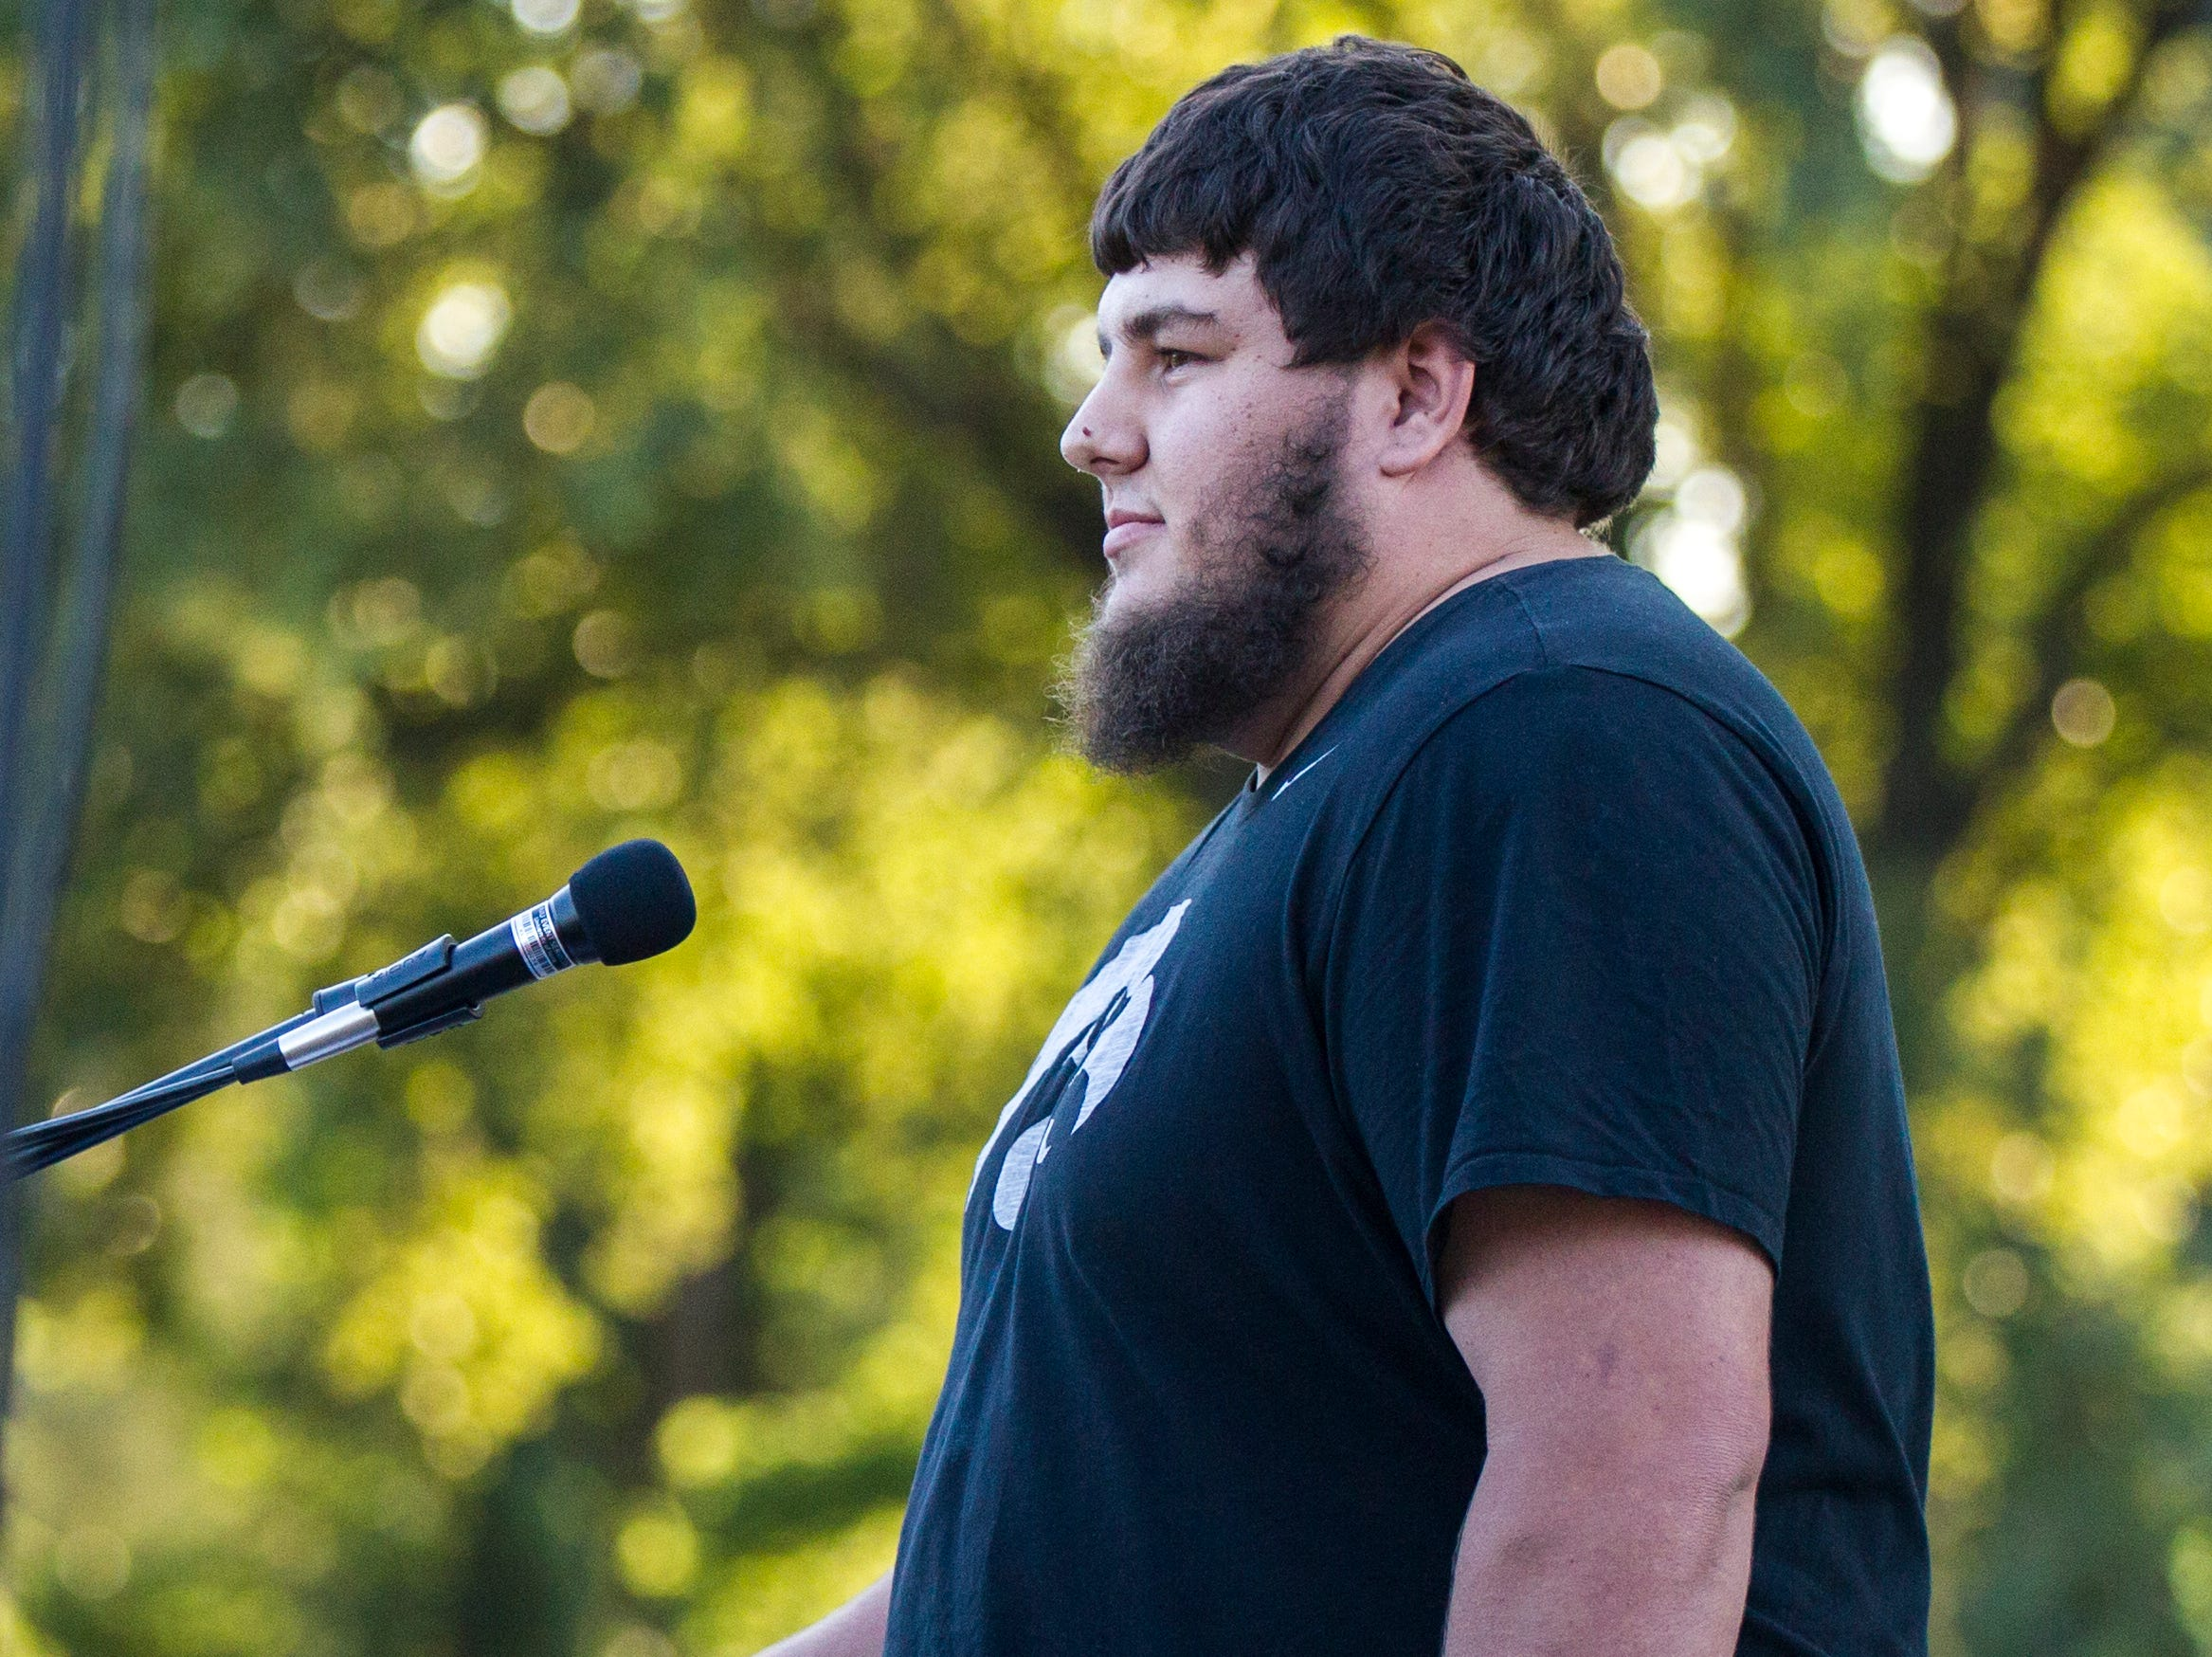 Jake Tibbetts, brother of Mollie Tibbetts, speaks during a vigil for Mollie Tibbetts on Wednesday, Aug. 22, 2018, in Hubbard Park on the University of Iowa campus in Iowa City.